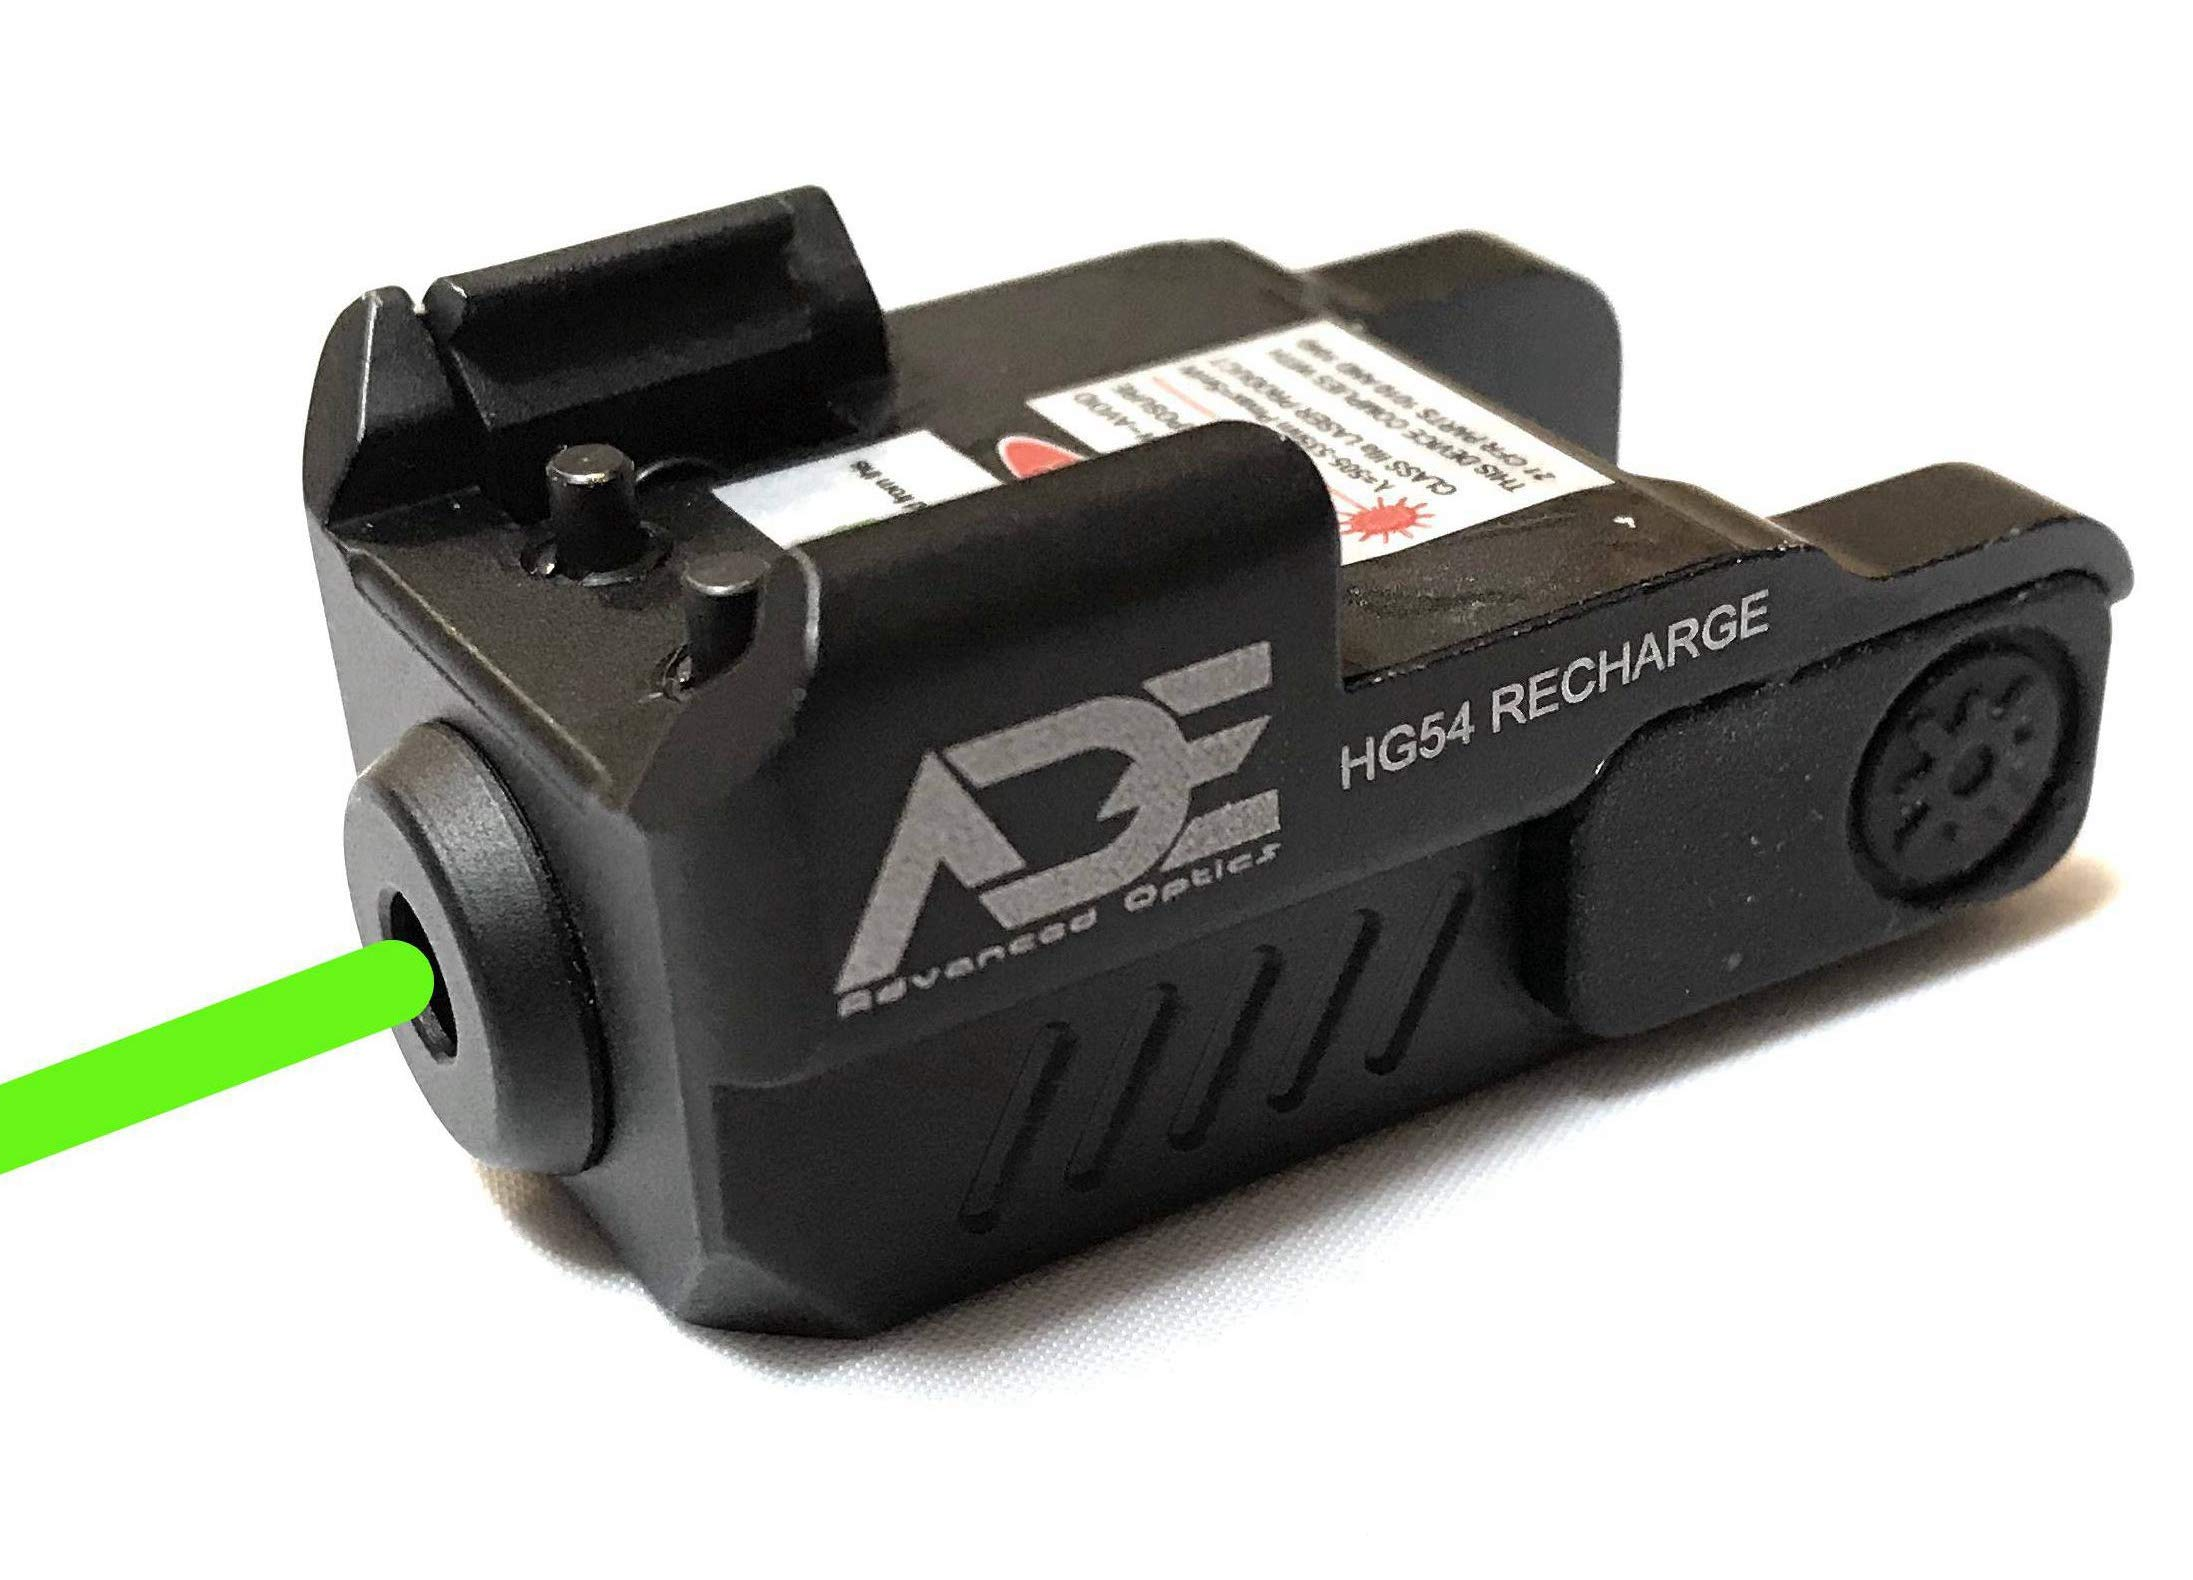 Ade Advanced Optics HG54G Rechargeable Strobe Laser Sight for Pistol Handgun, Green by Ade Advanced Optics